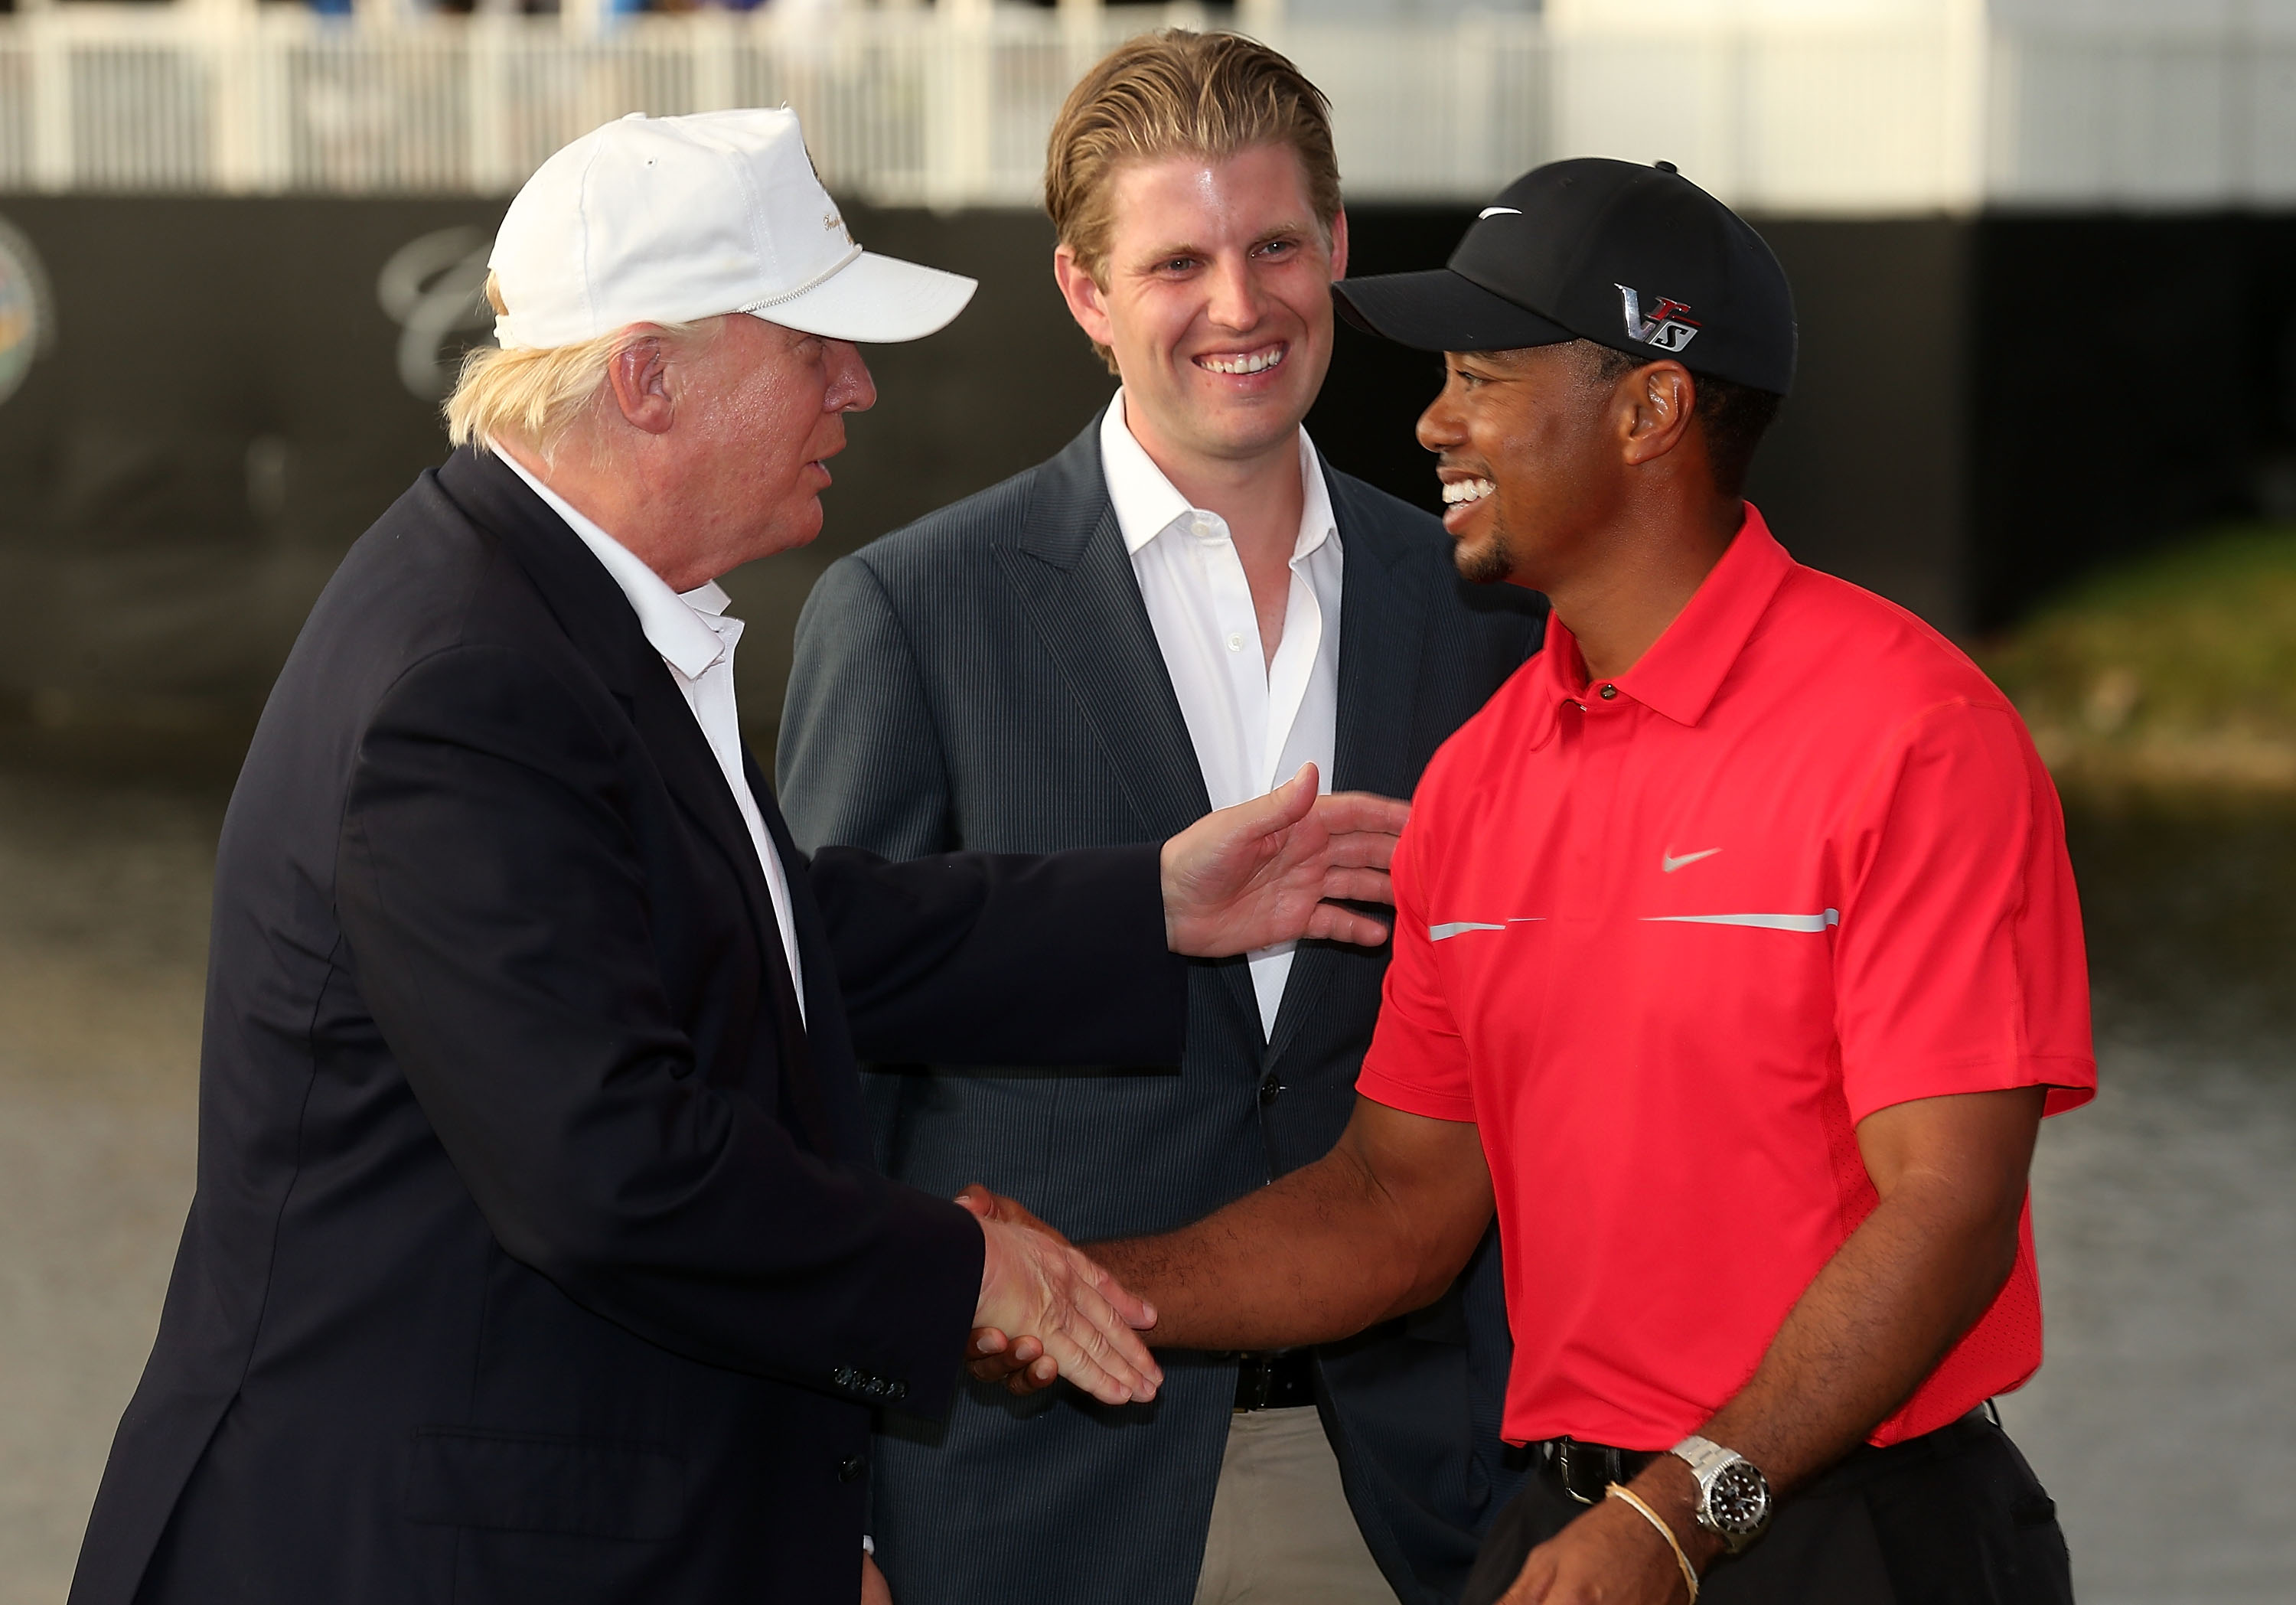 Donald Trump Will Tee It Up With Tiger Woods And Dustin Johnson